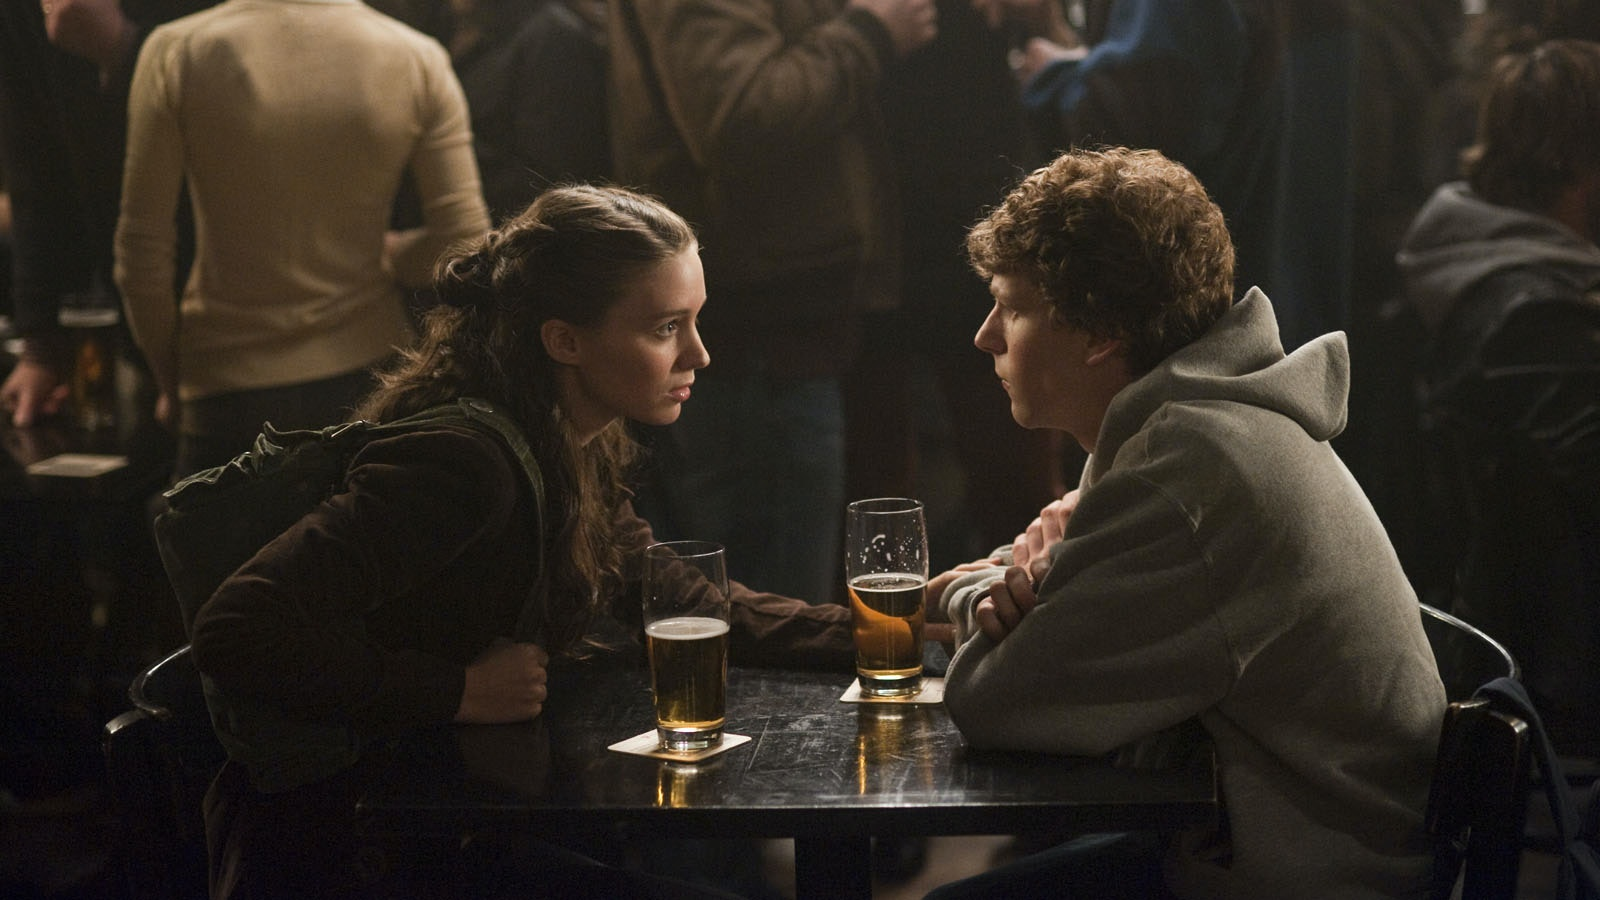 """Rooney Mara, left, and Jesse Eisenberg in Columbia Pictures' """"The Social Network."""""""